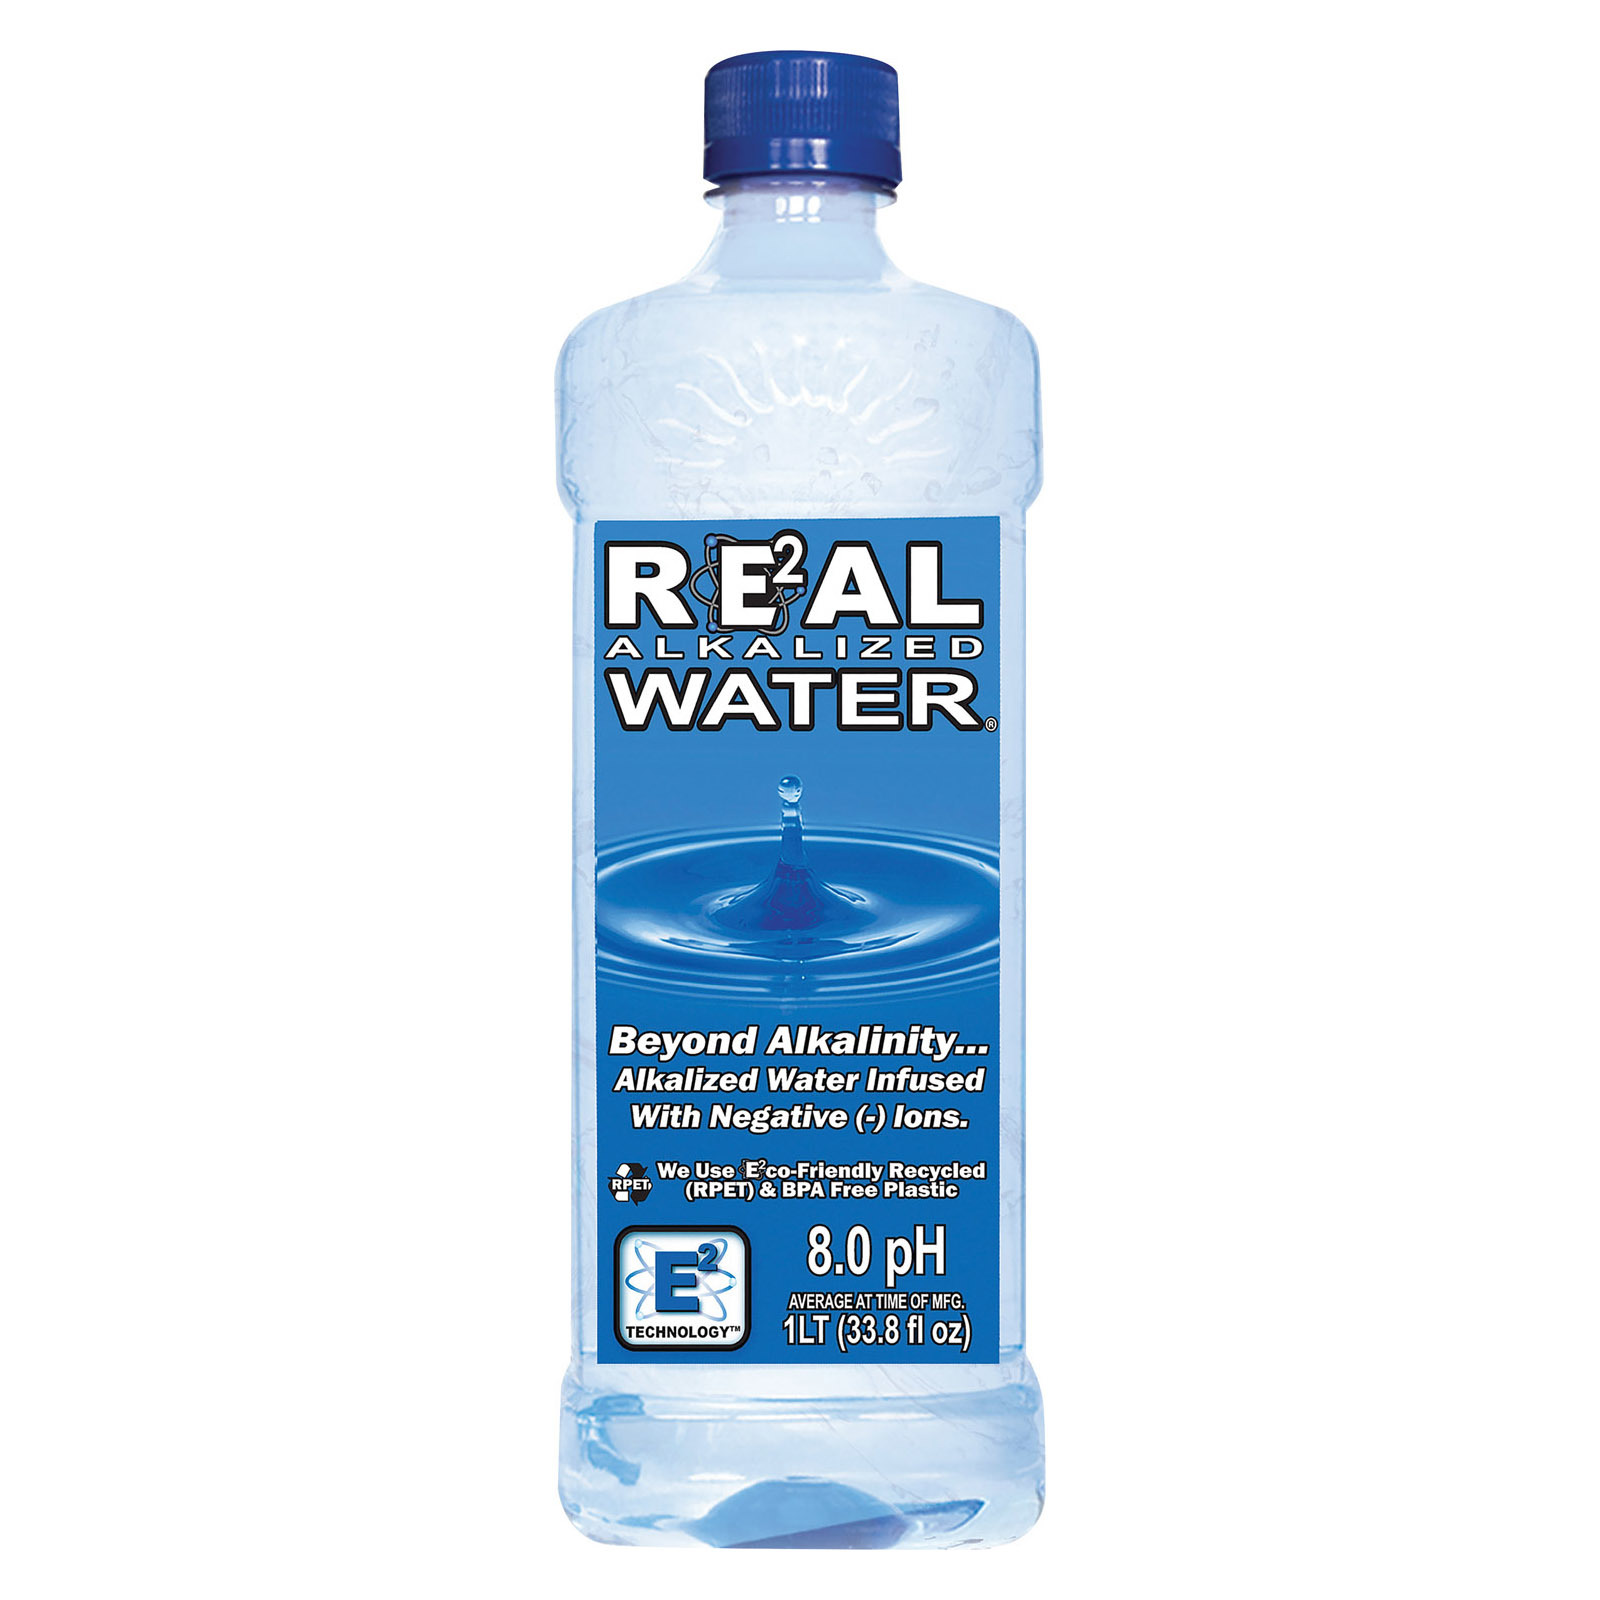 Real Water Alkalized Water, 1 Liter